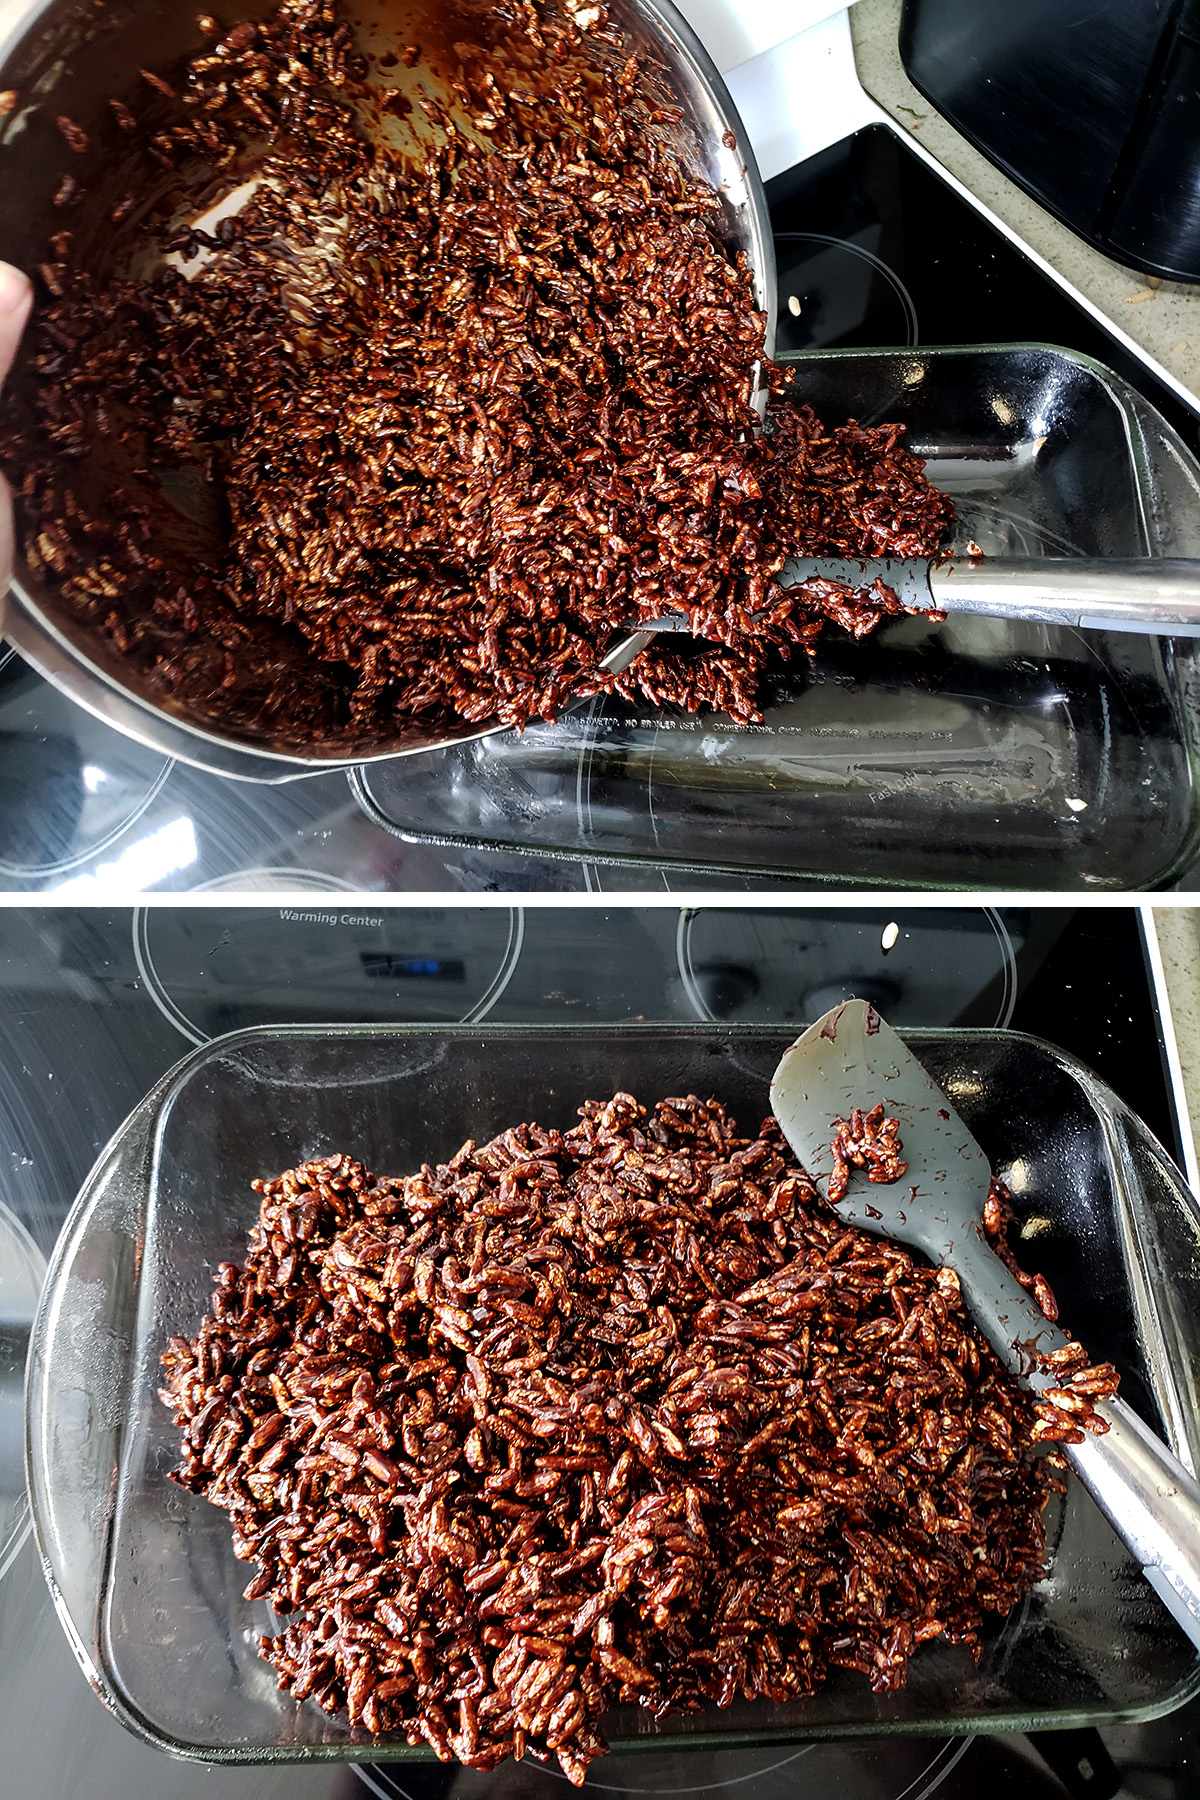 A two part image showing the chocolate cereal mixture being poured into a glass baking dish, and it being spread around the fish.